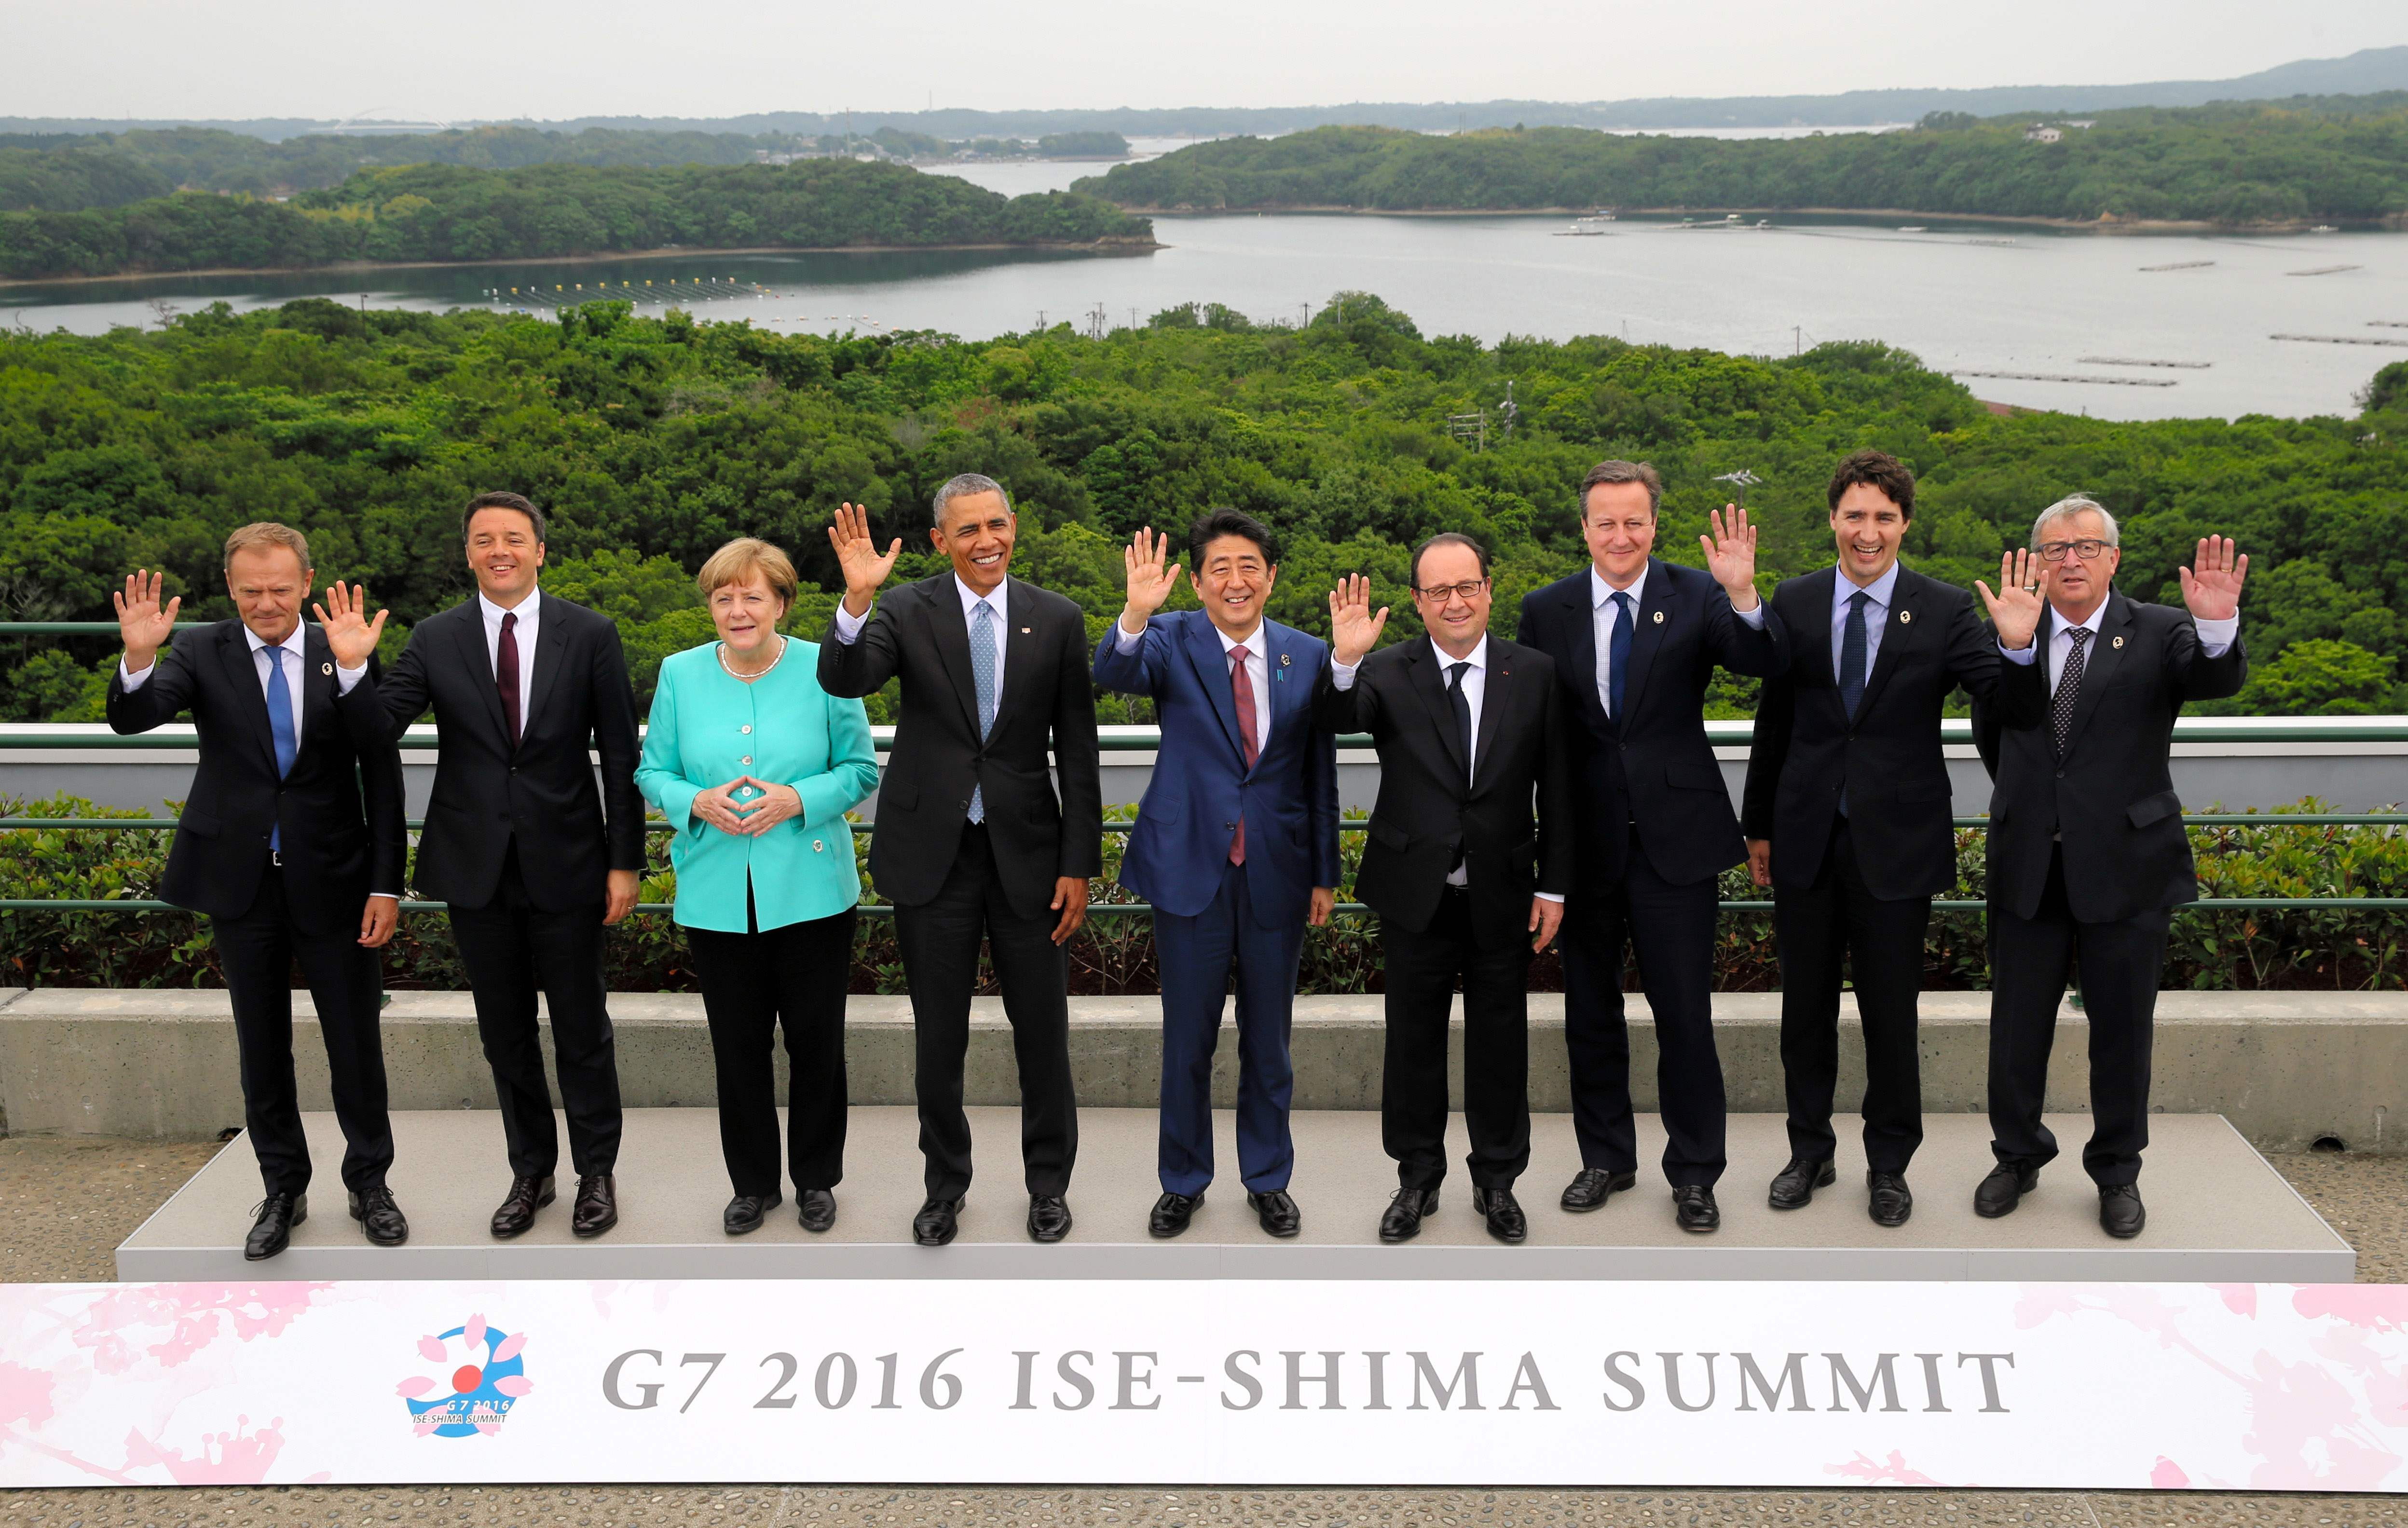 G7 leaders warn of Brexit risk to growth